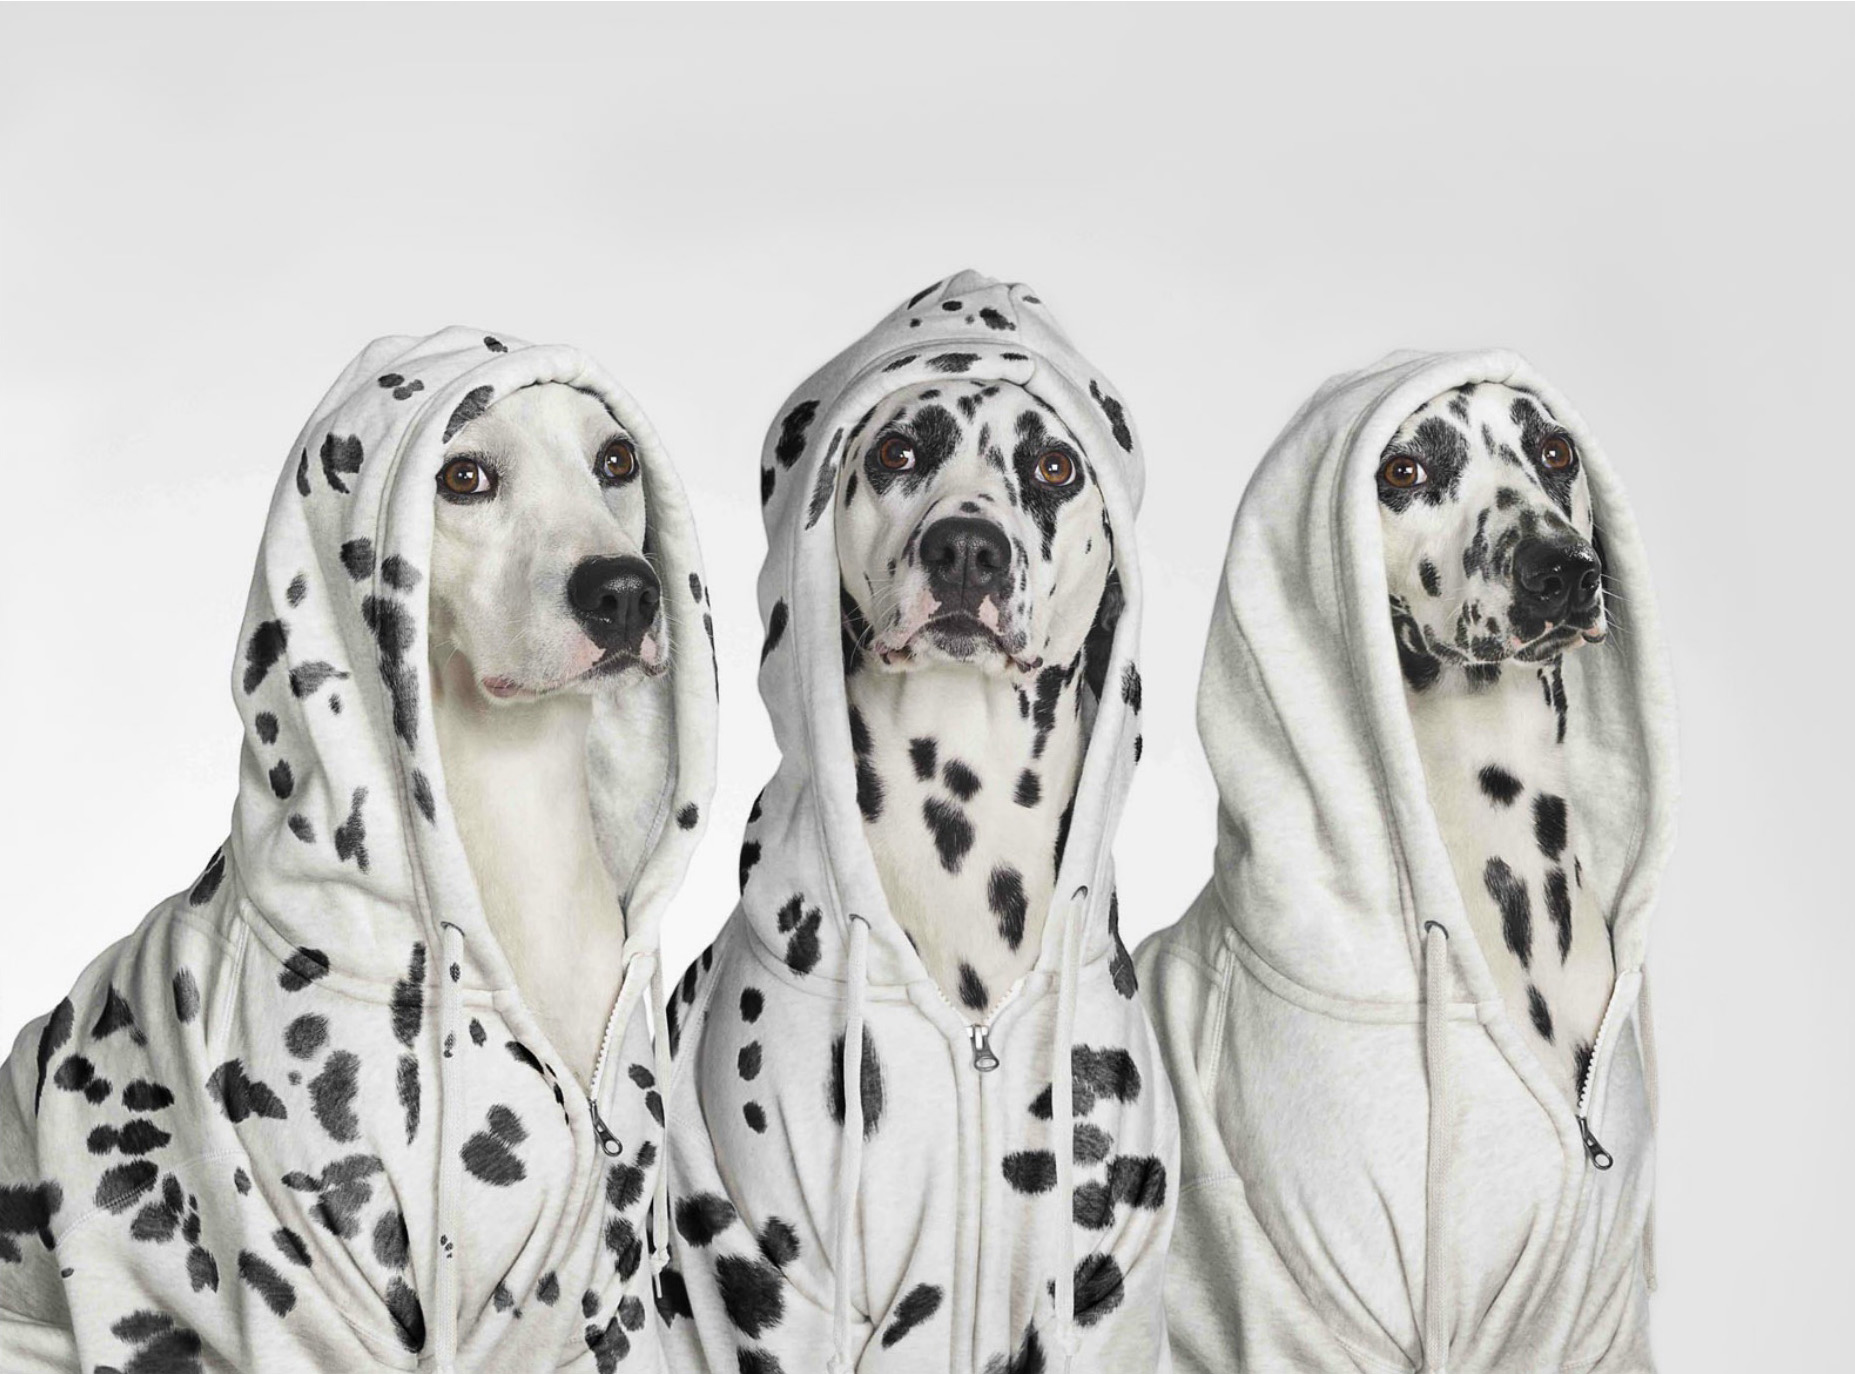 Three dalmatian dogs wearing hoodies with spots juxtaposed on fur and clothes. CopyrightGandeeVasanDog24